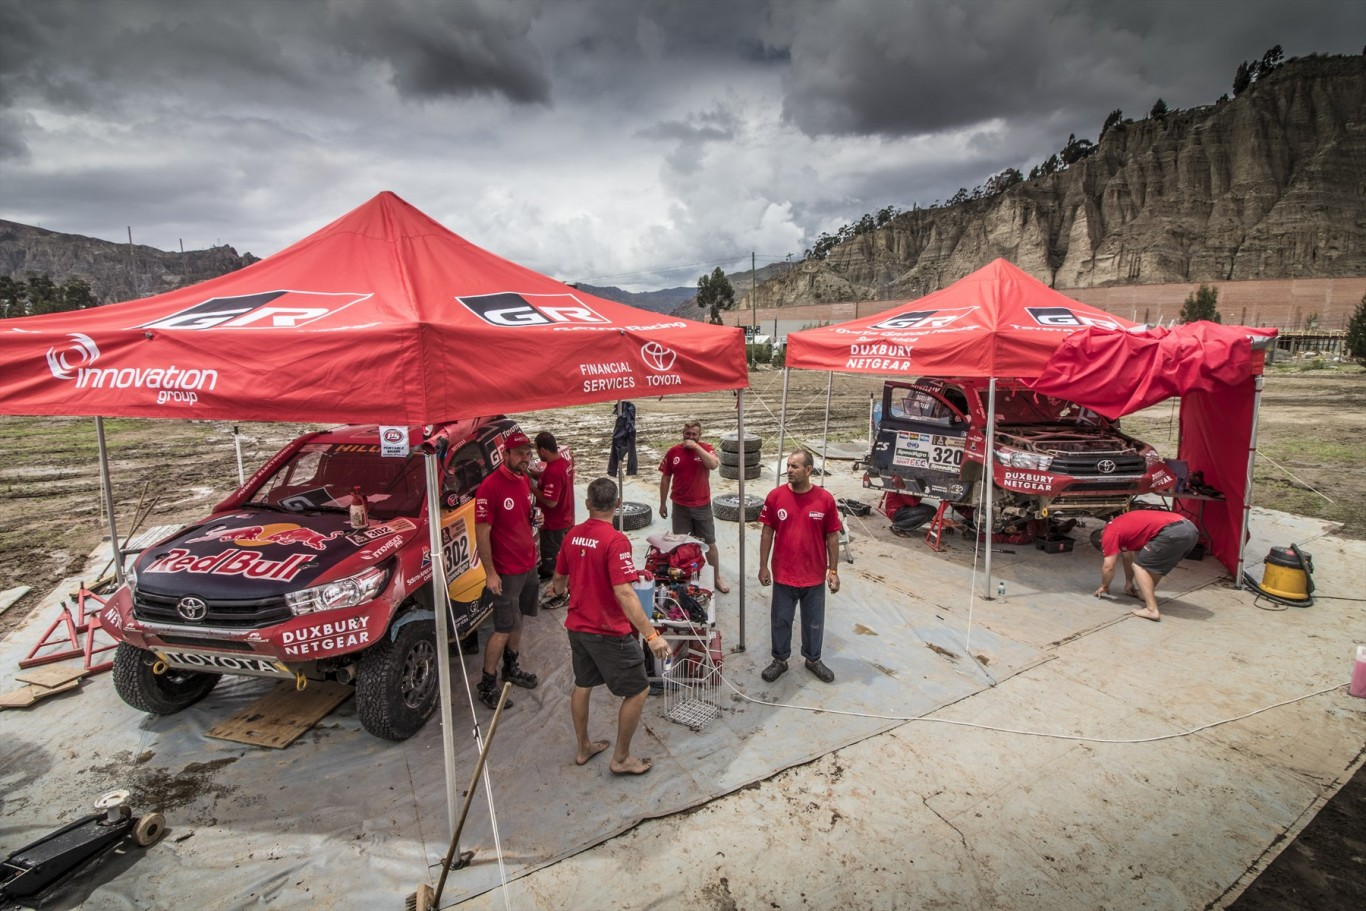 Respite on Dakar 2017 as the race reaches its midpoint